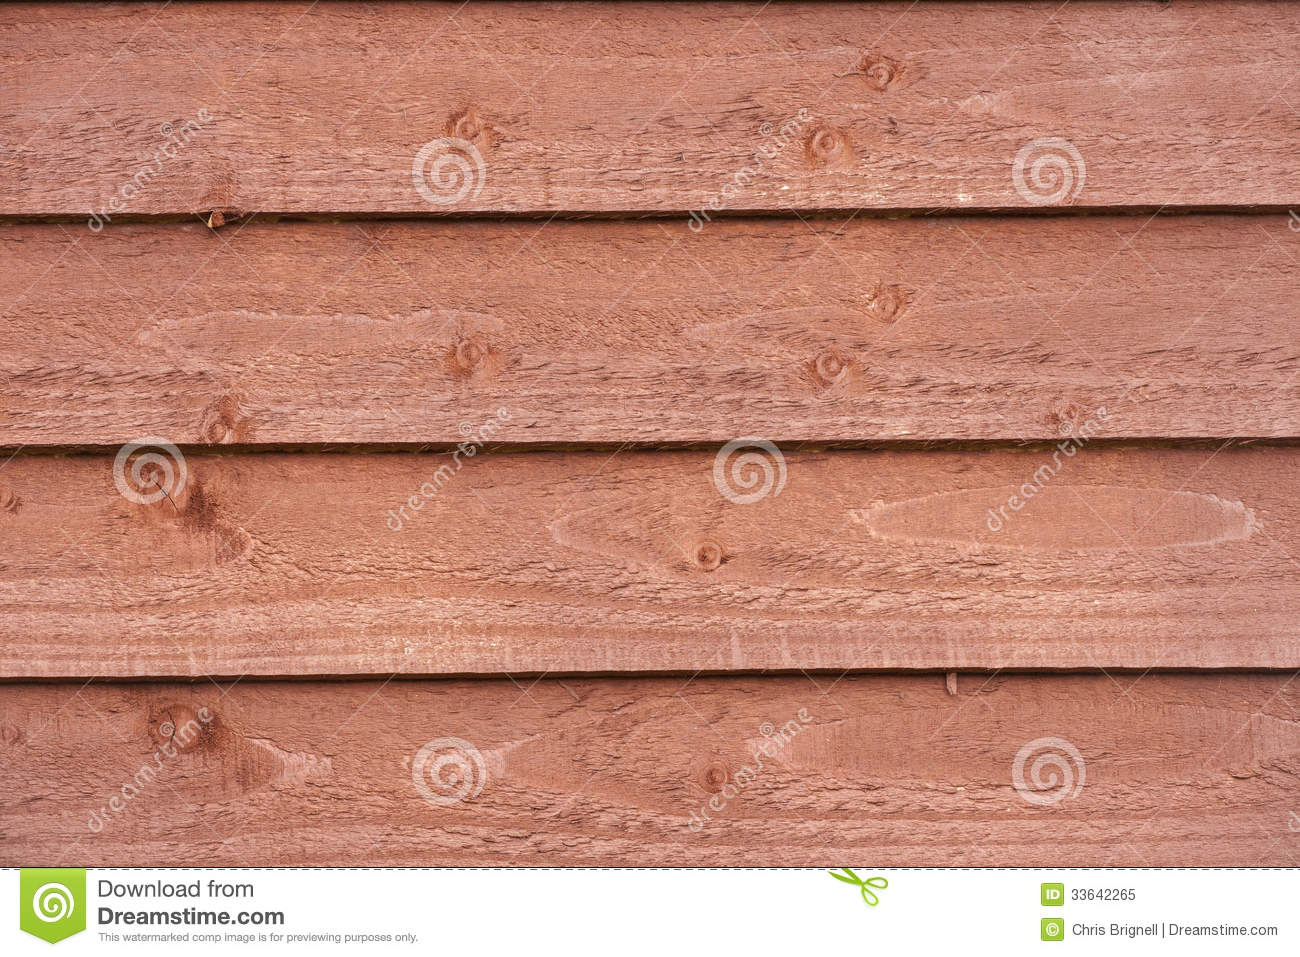 Very Impressive portraiture of Wooden Shed Panel Abstract Royalty Free Stock Photo Image: 33642265 with #83A922 color and 1300x957 pixels